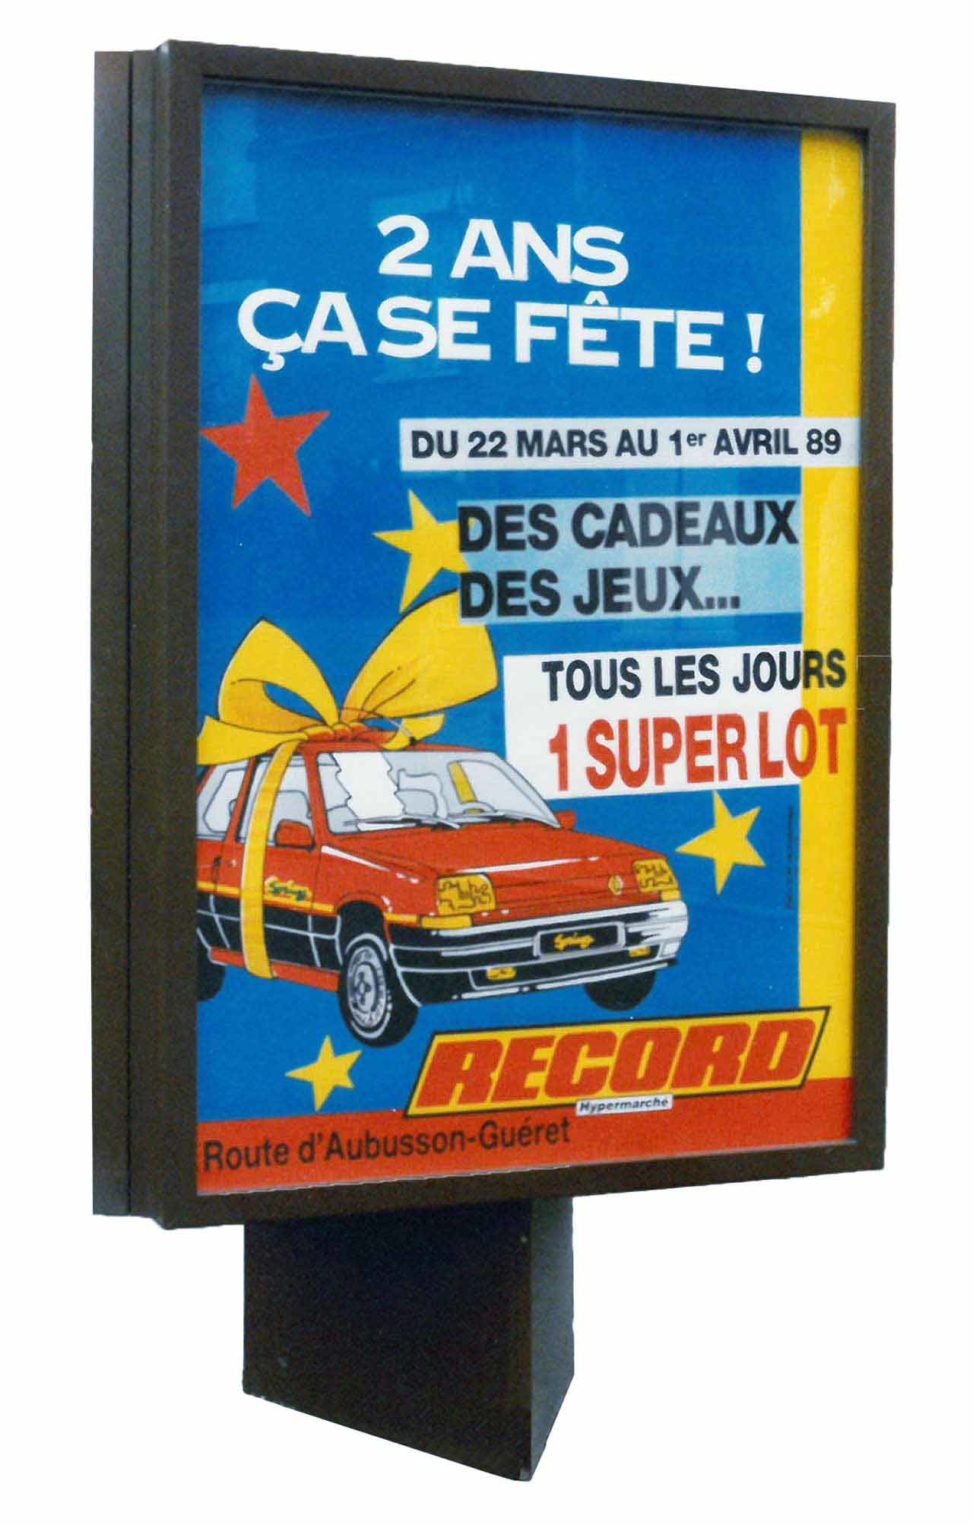 1989-Affiche Sucette-Supermarchés-Record-Agence-Scandere